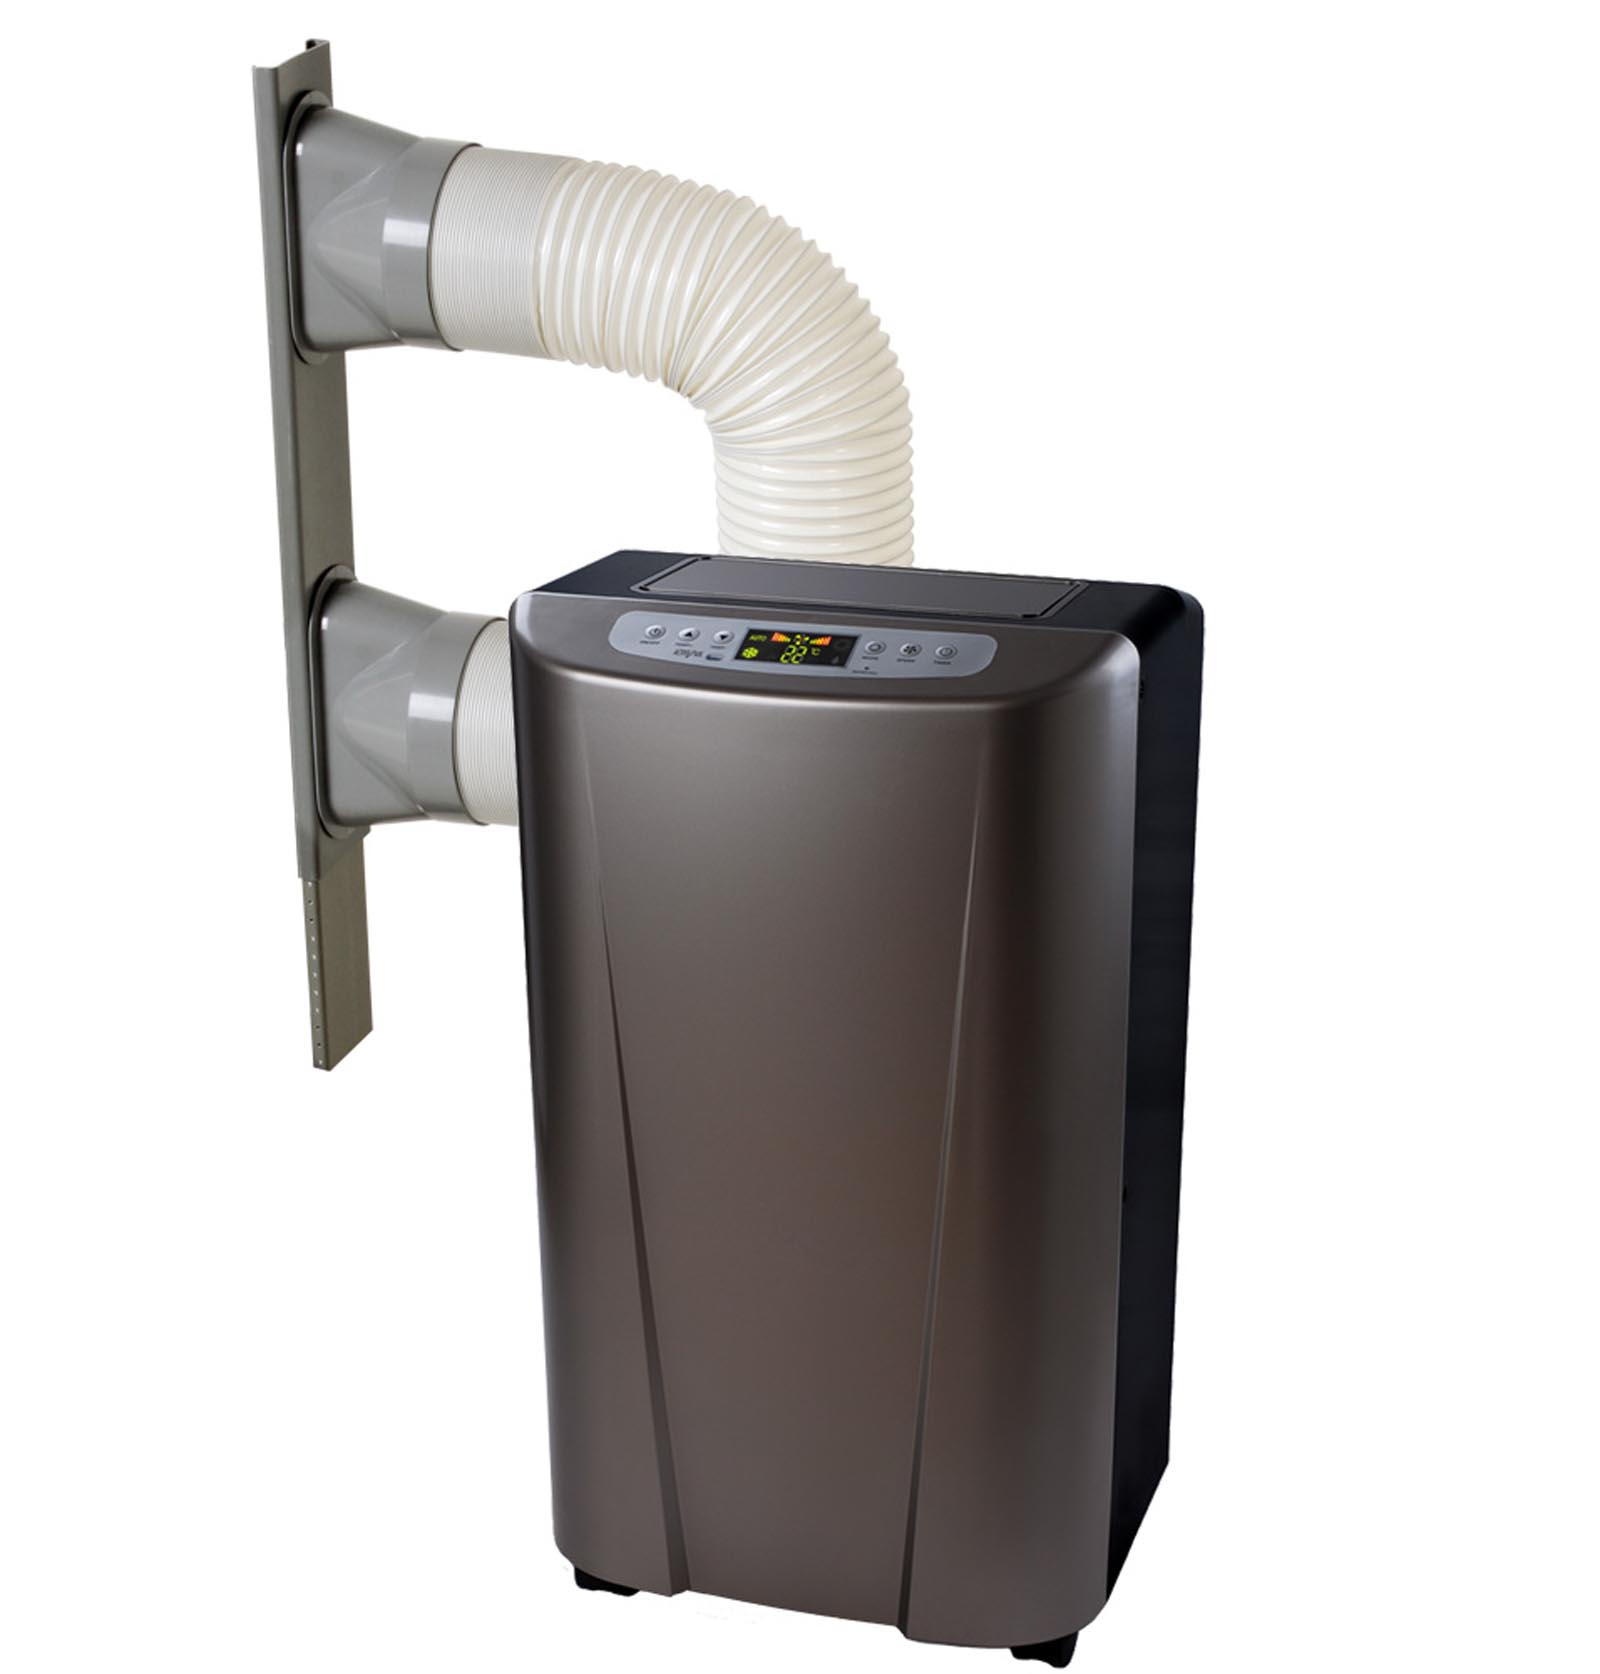 NEW Active Air Portable Digital 14,000 BTU AC Air Conditi...